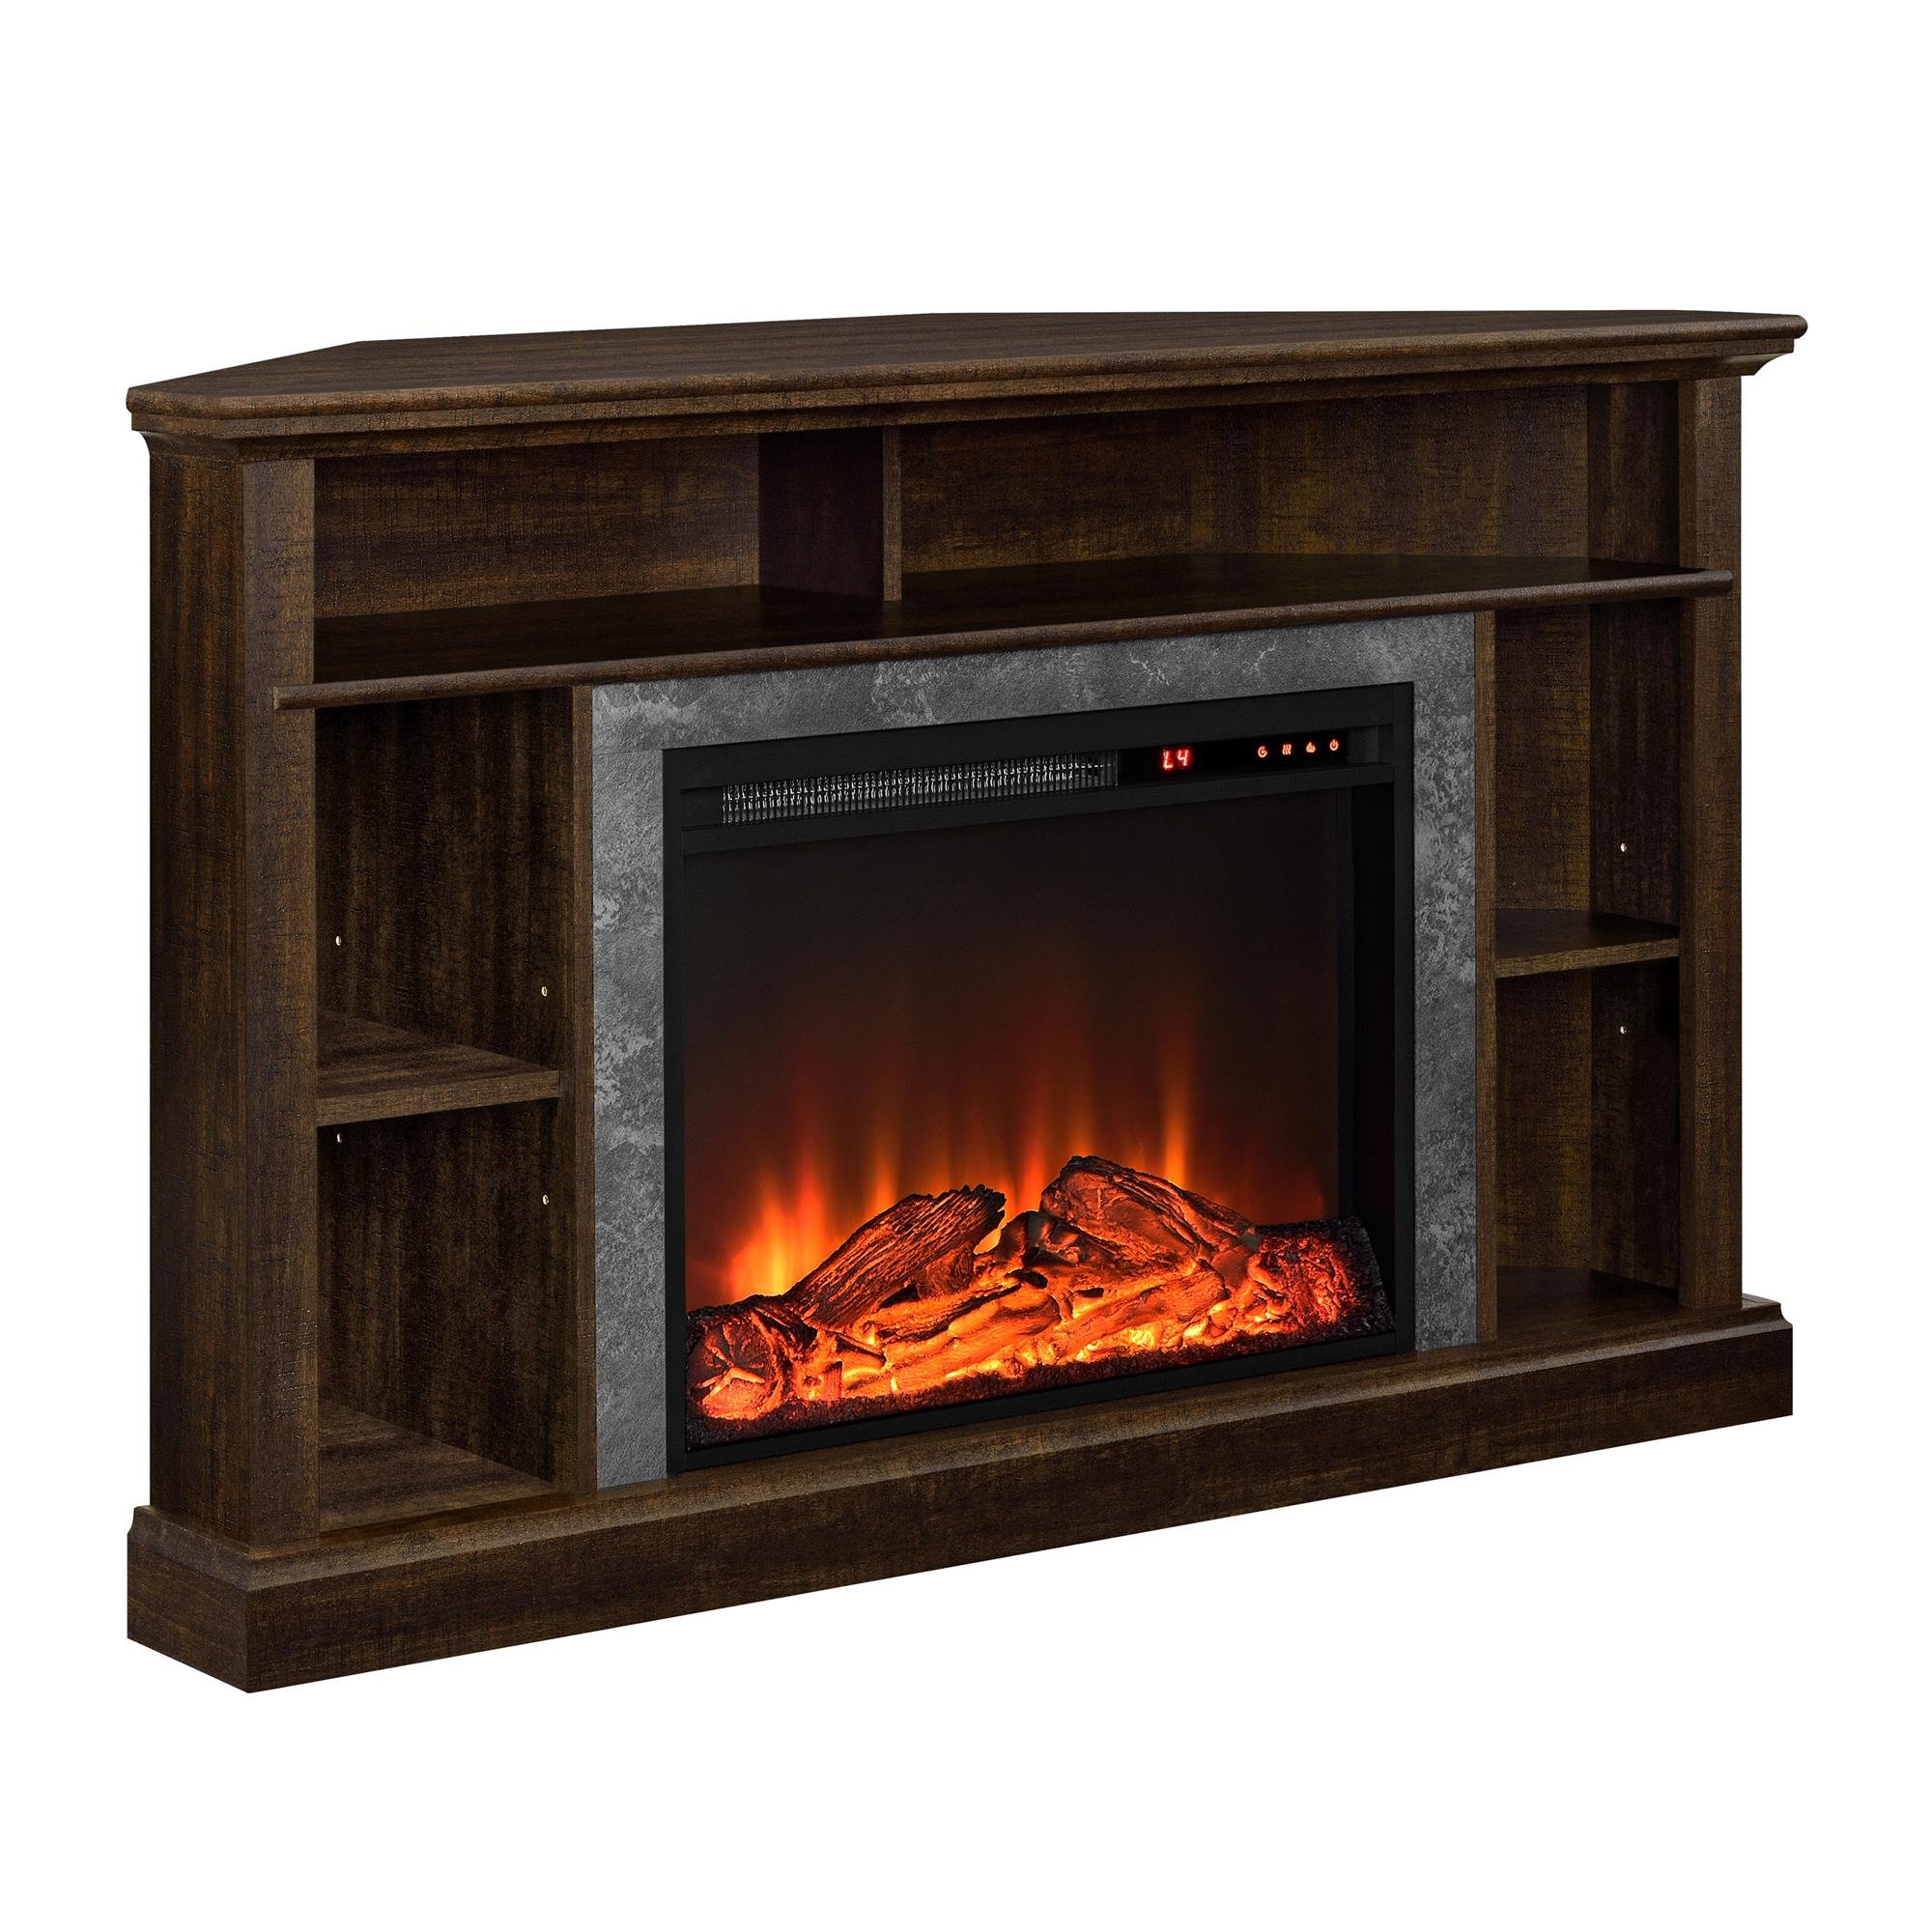 Ameriwood Home Overland Electric Corner Fireplace for TVs up to 50'' Wide, Espresso